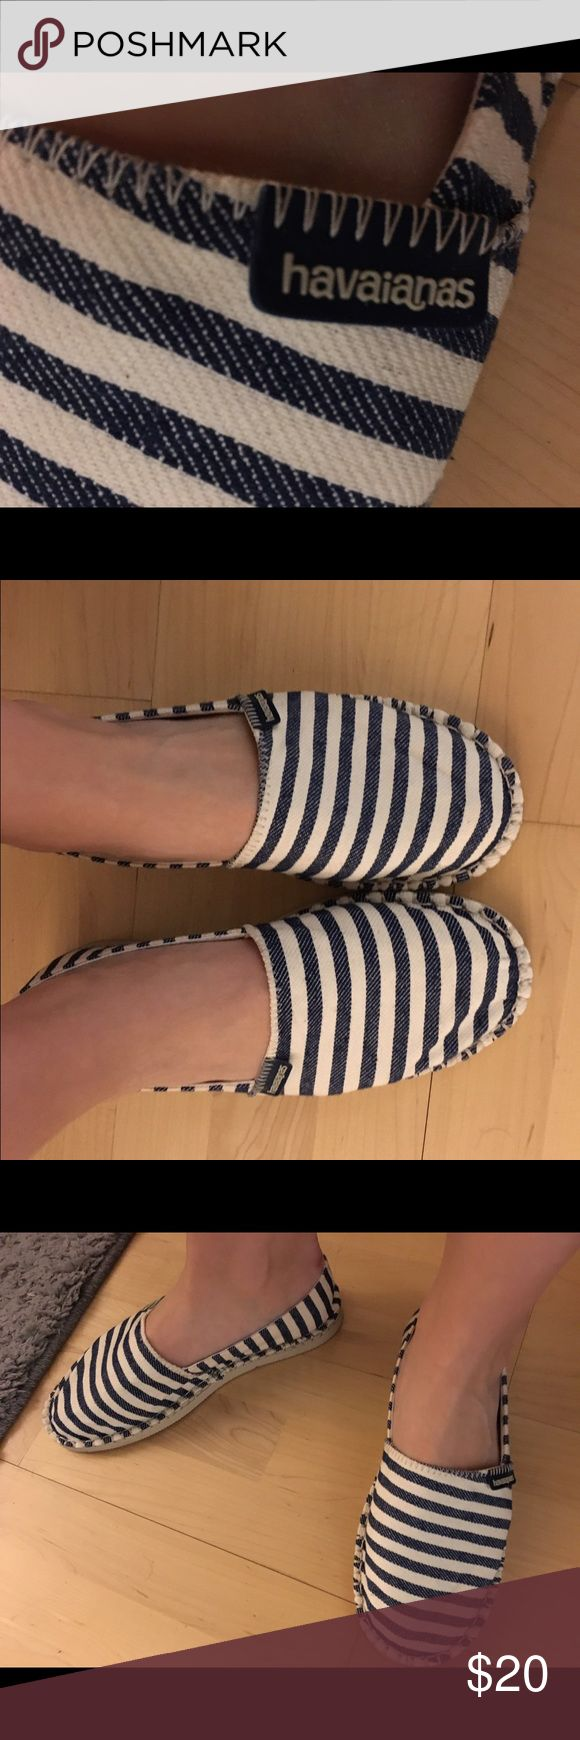 Genuine Havaianas striped mules size M From the famous Brazilian flip flop maker!  These are never worn and brought back from - trip to Brazil!  I wear a 9.5 and fit these comfortably. Havaianas Shoes Sandals